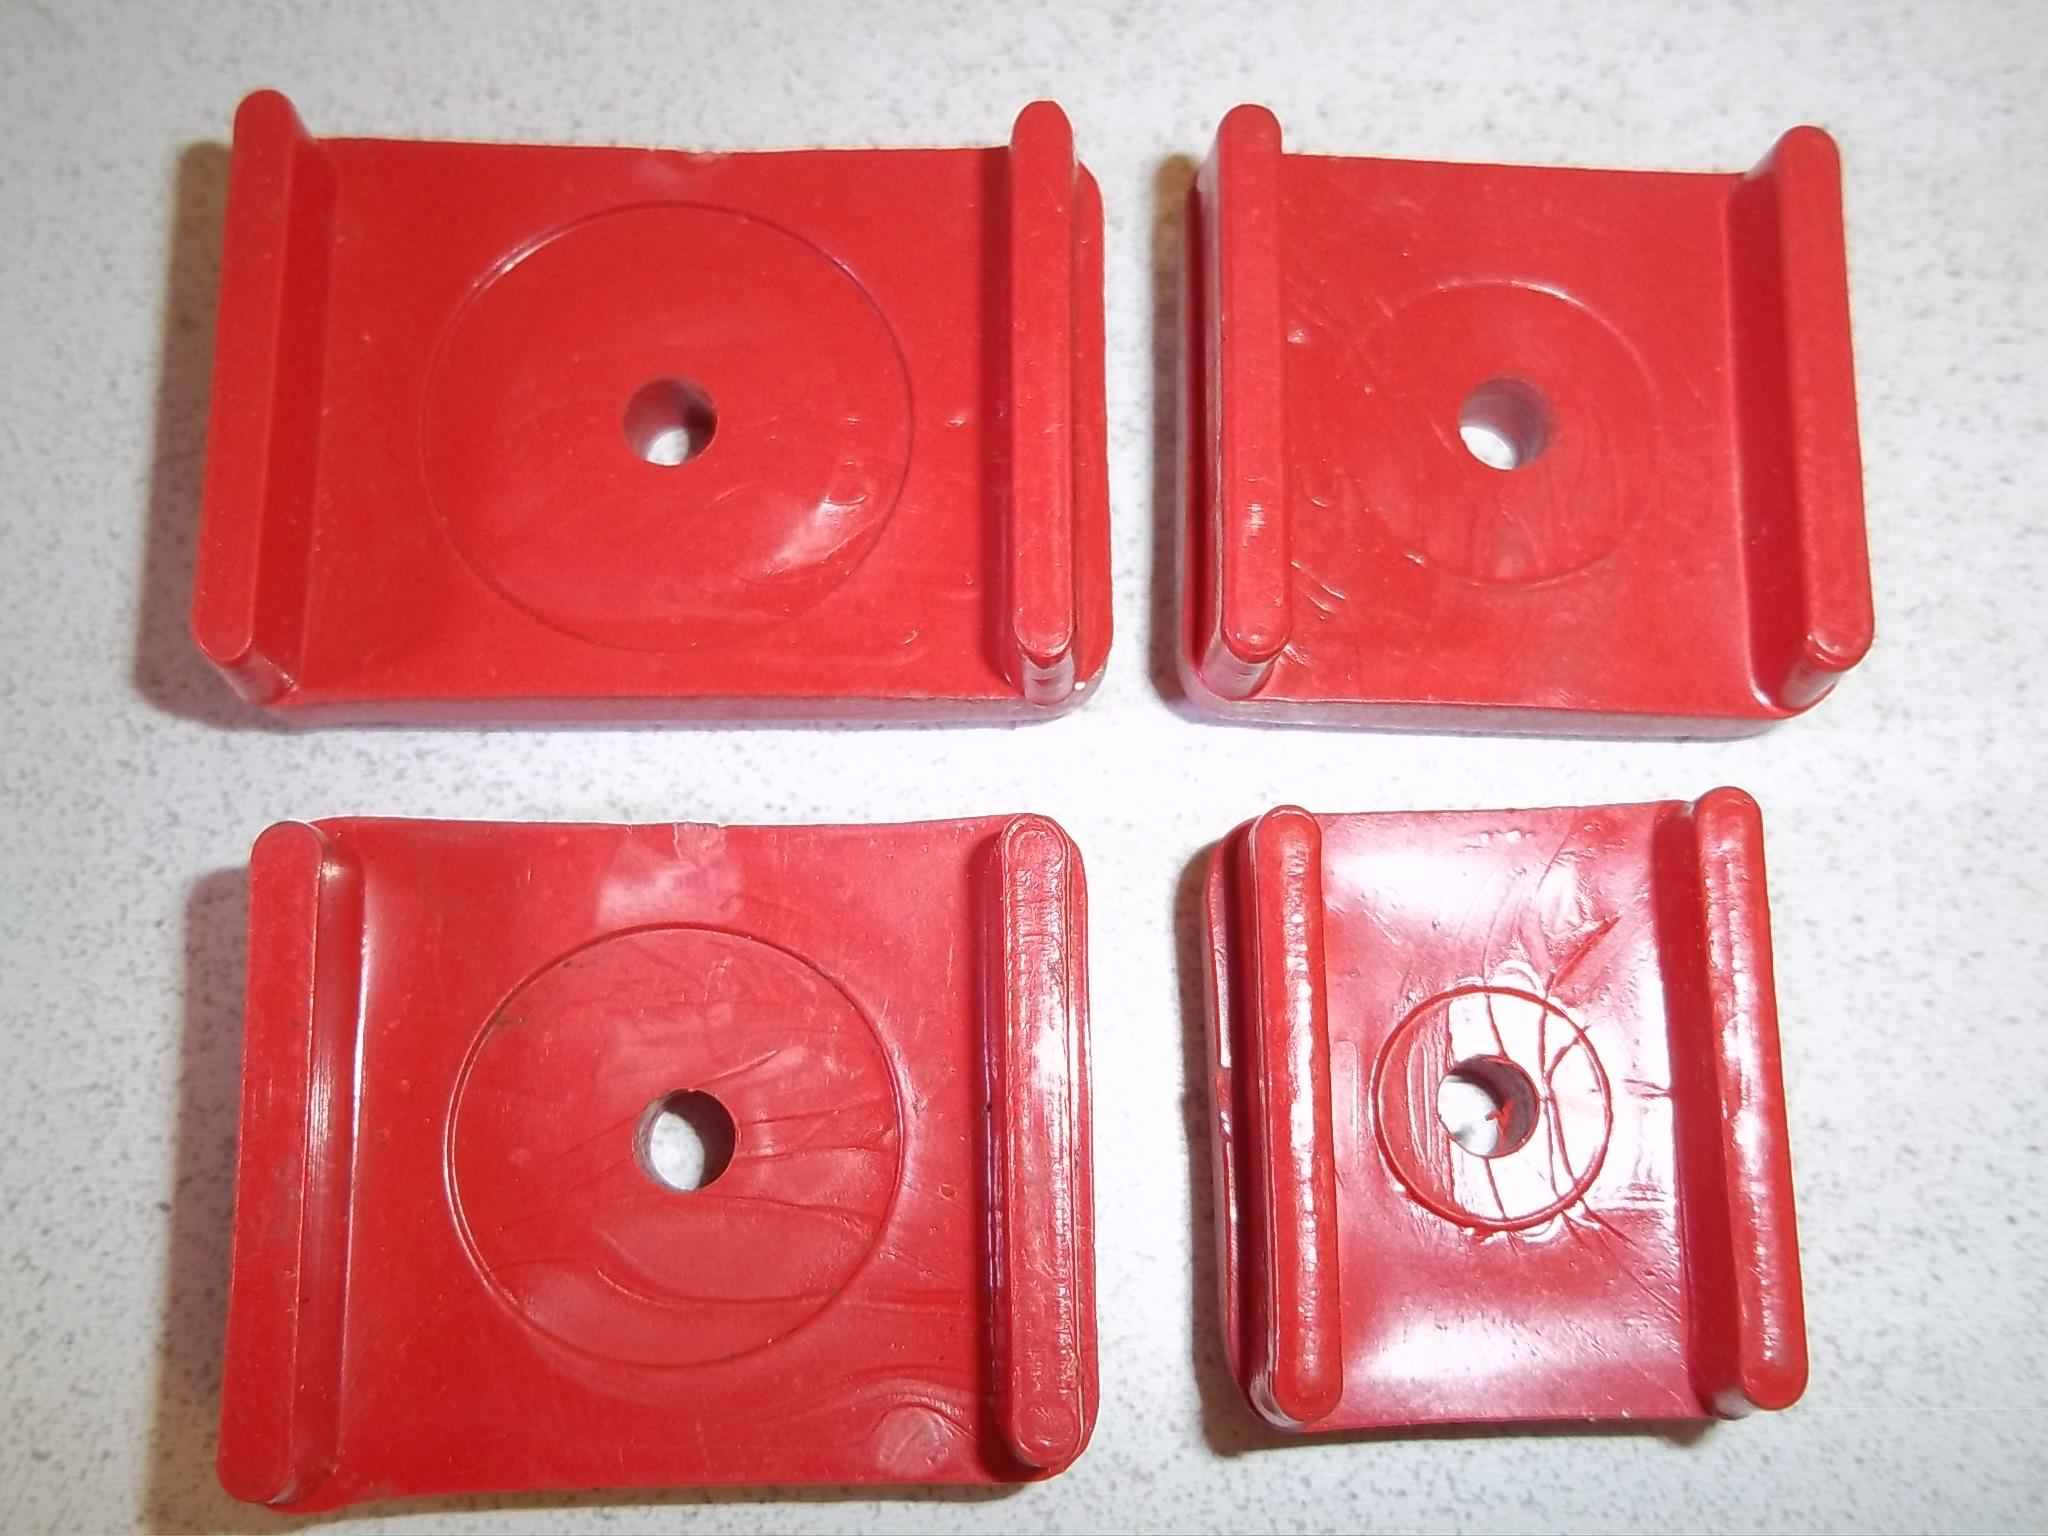 CO901 New! Square Die Set for Closing Square/Rectangular Watches